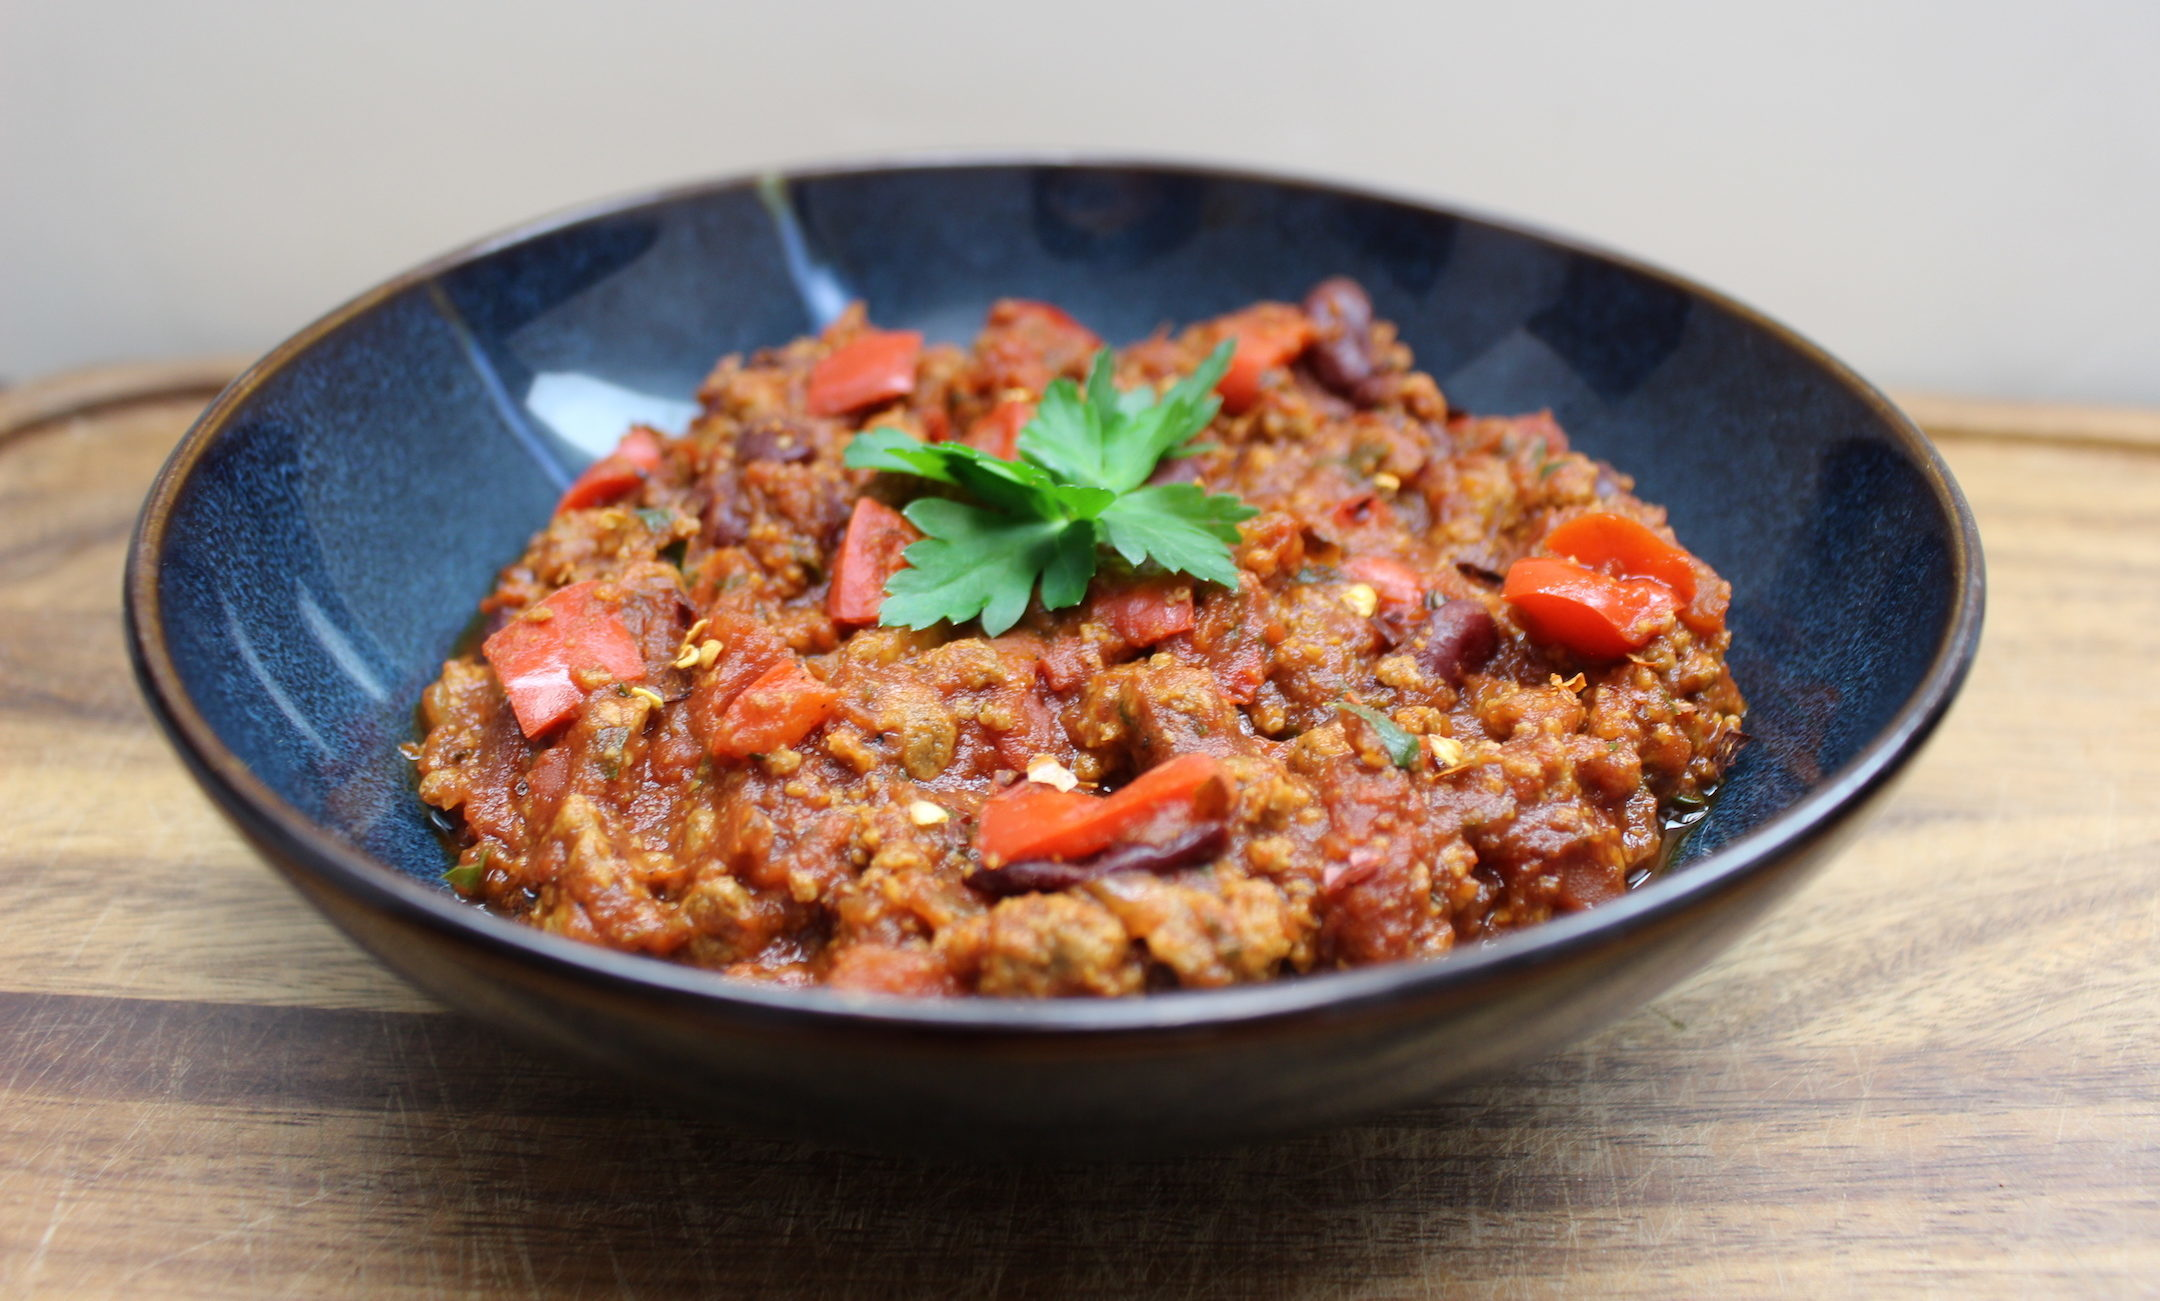 Marukan Instant Pot Vegan Chili